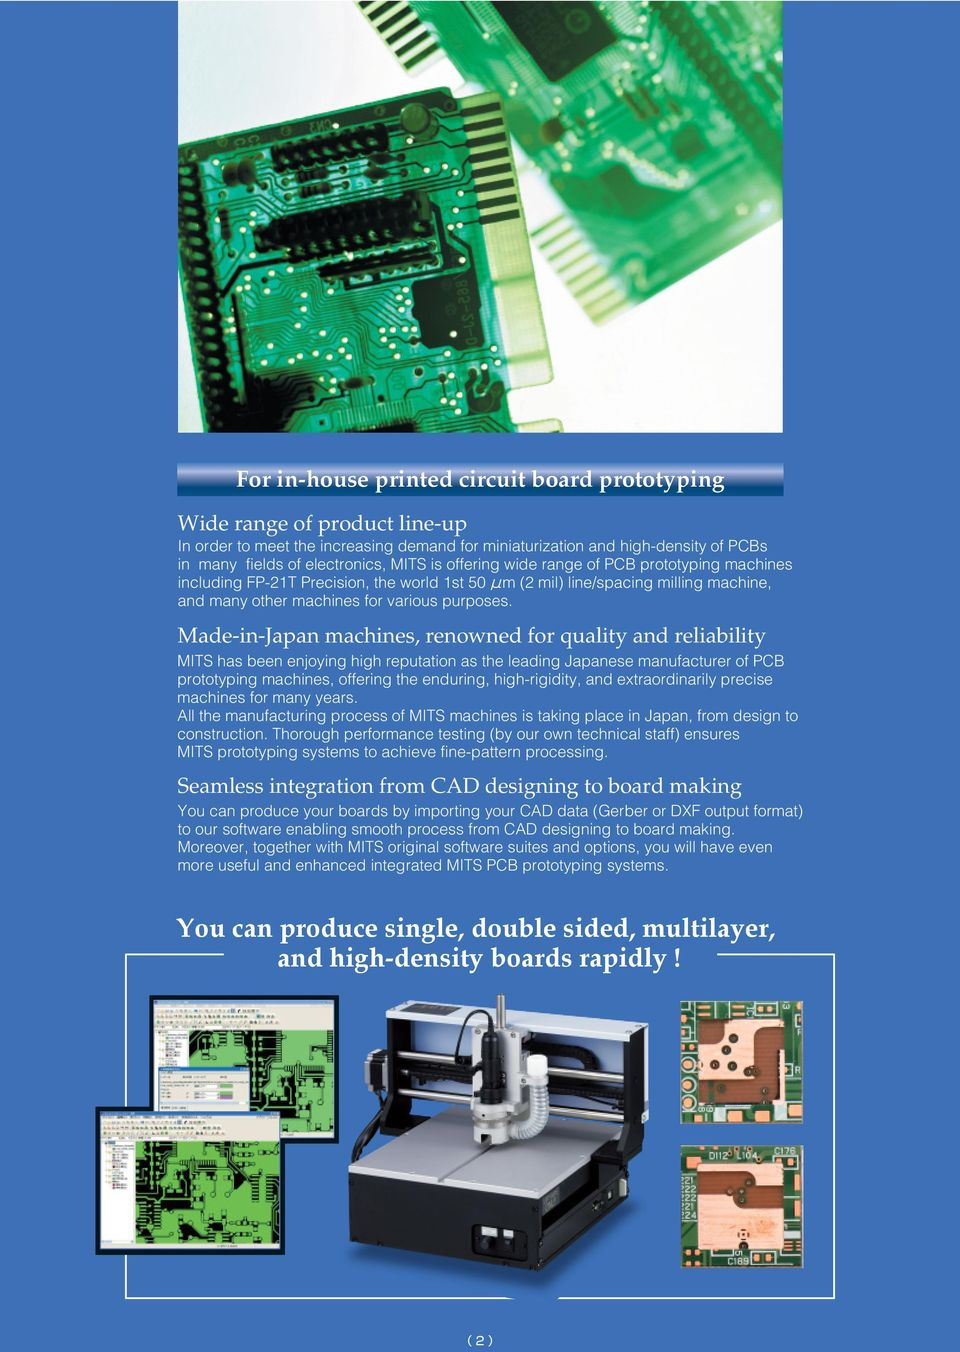 Printed Circuit Board Prototyping System Pdf How To Make Your Own Boards The Easy Way Made In Japan Machines Renowned For Quality And Reliability Mits Has Been Enjoying